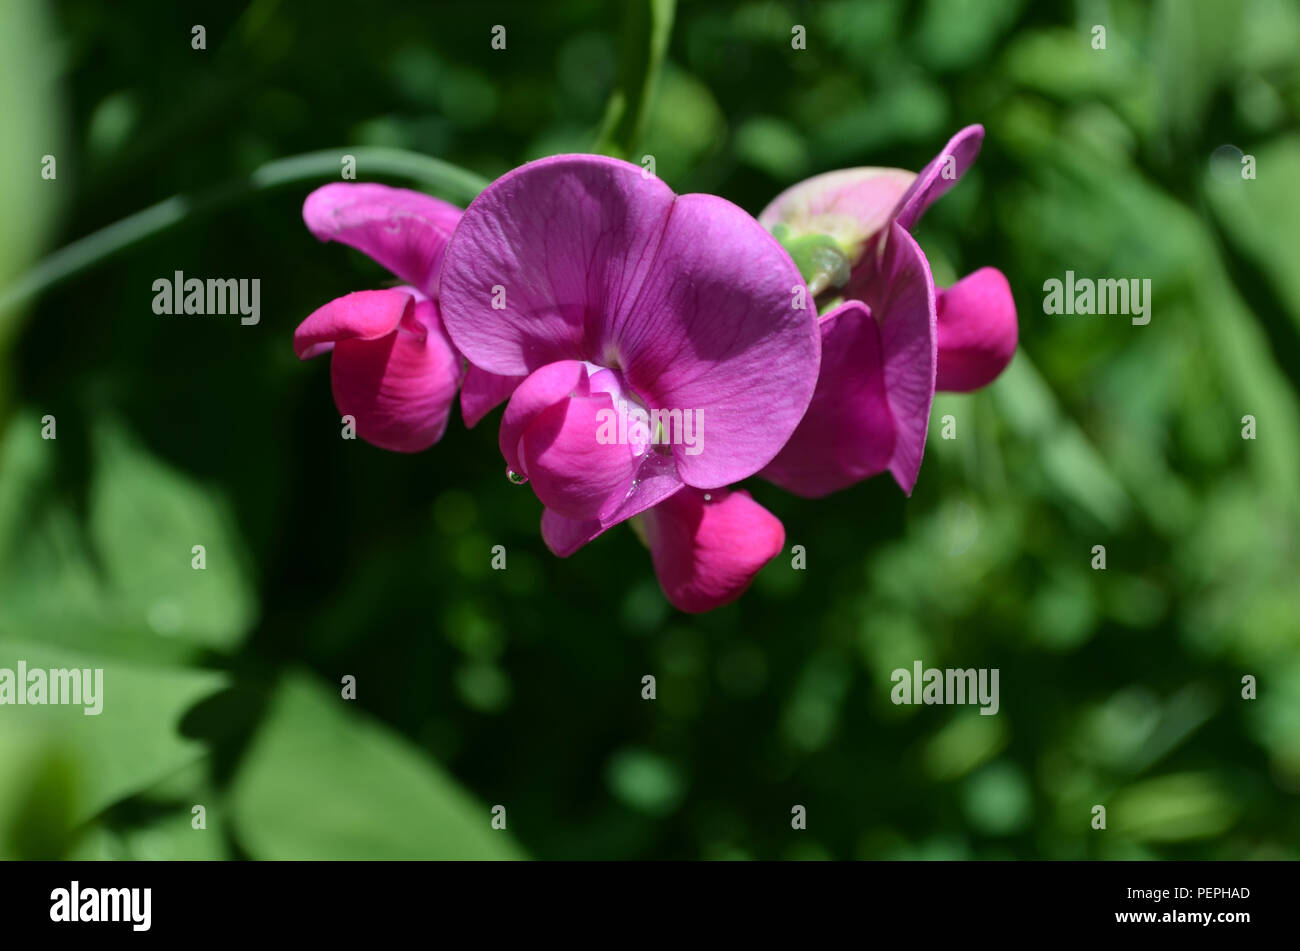 Very Pretty Blooming Hot Pink Sweet Pea Flowers In A Garden Stock